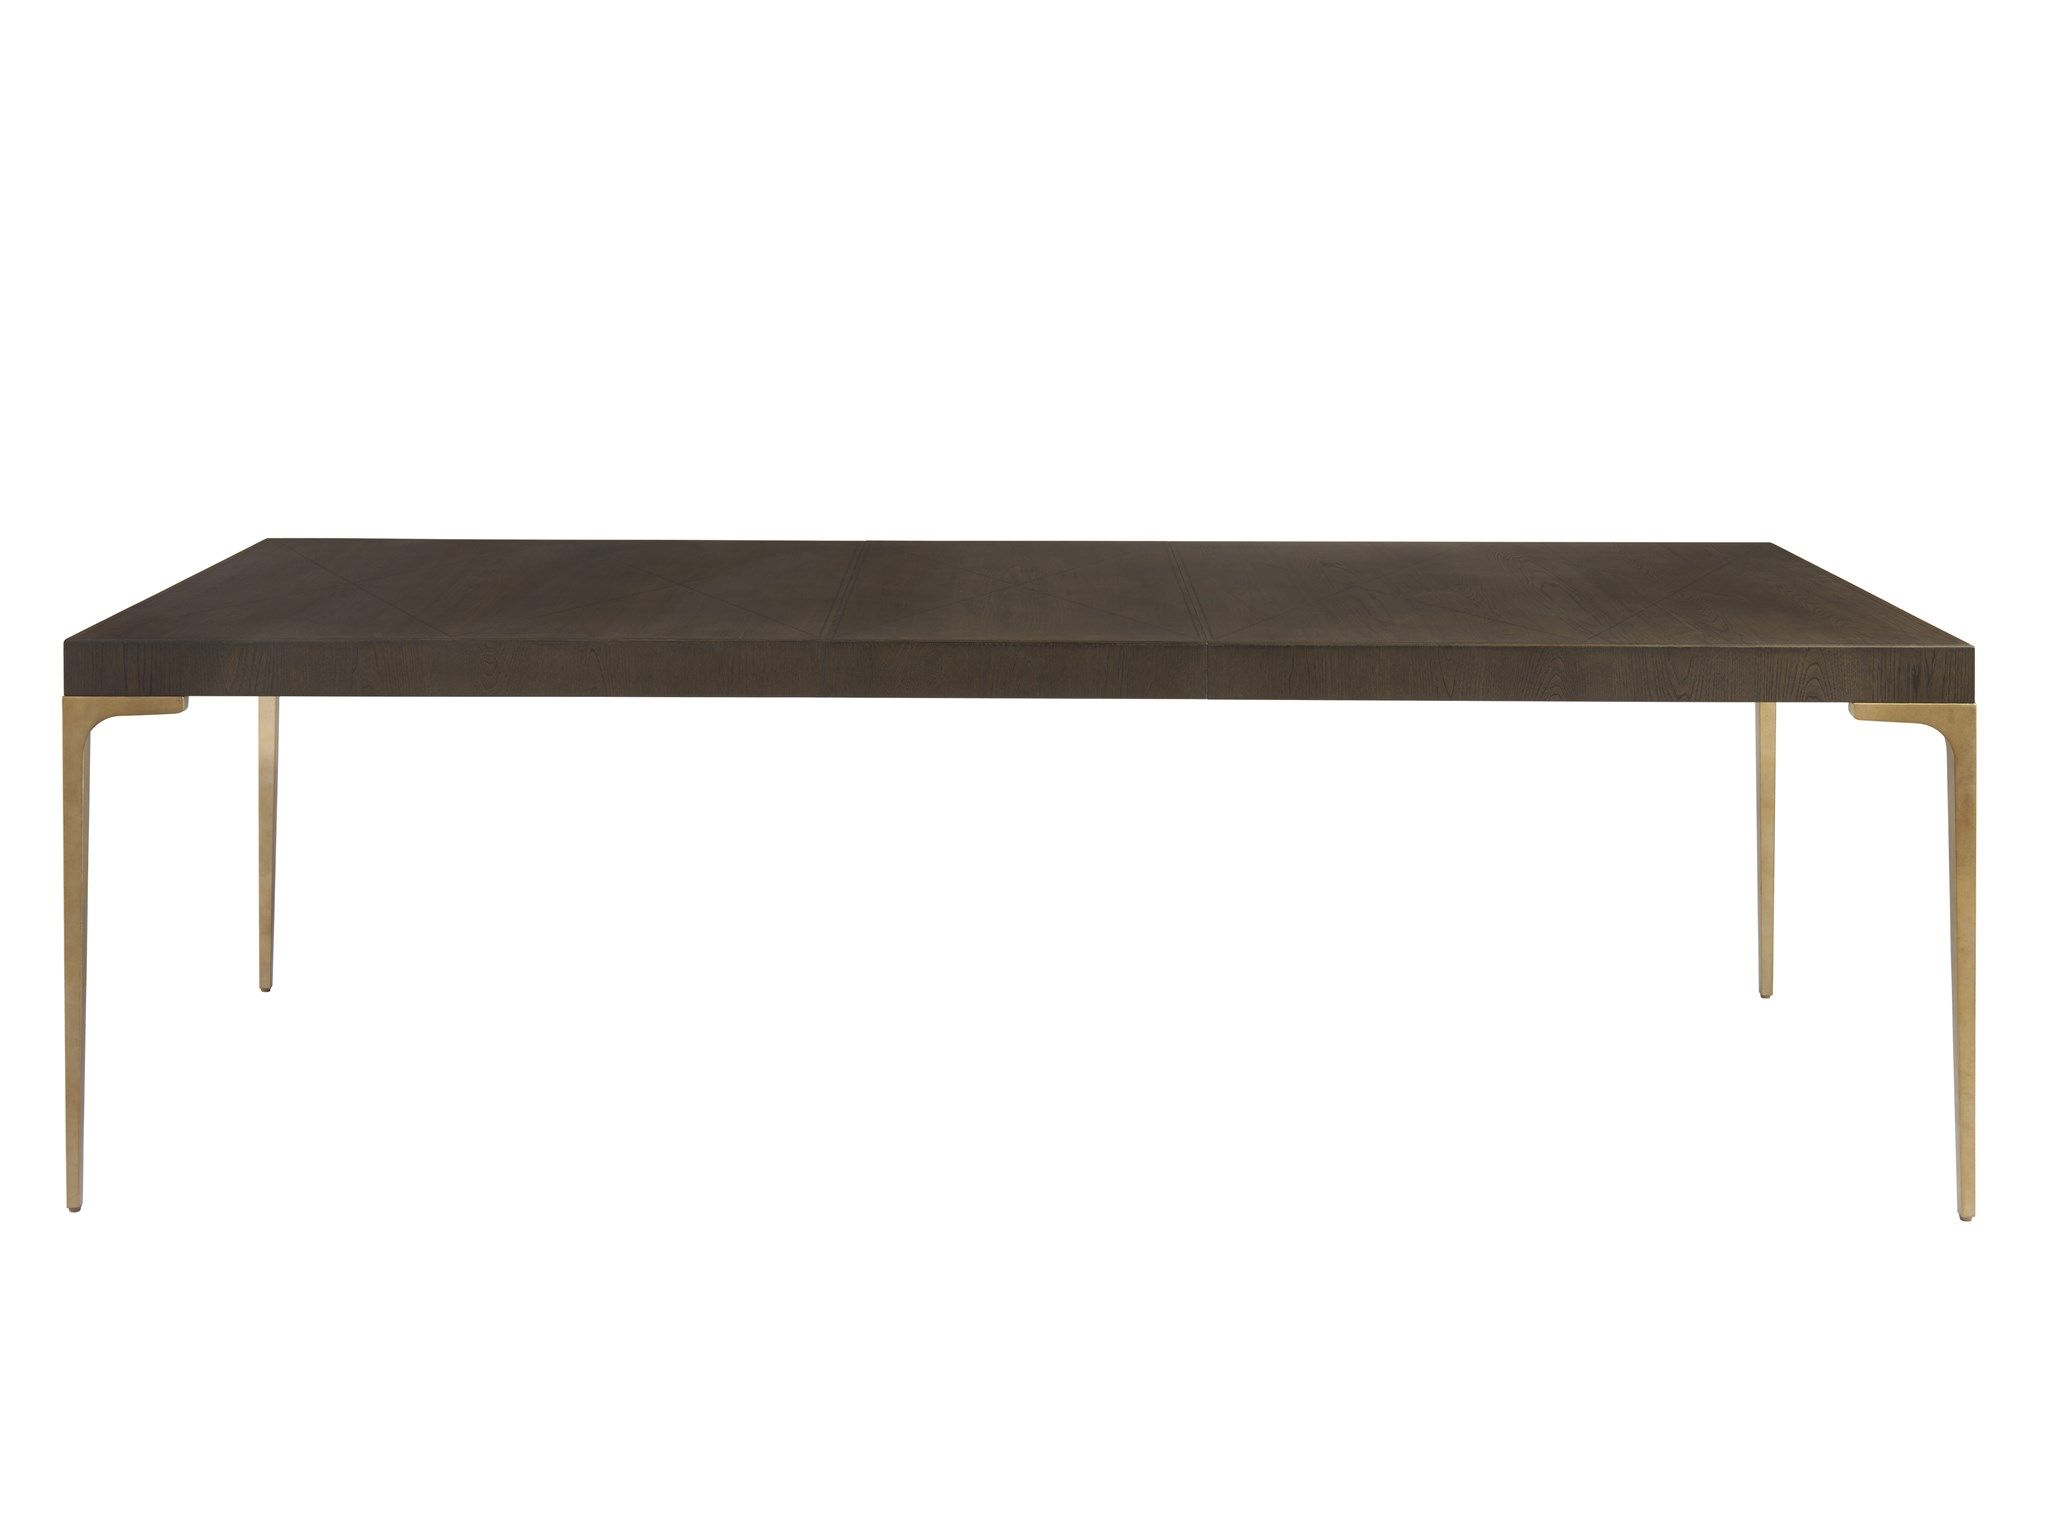 universal furniture soliloquy soliloquy dining table tables rh in pinterest com